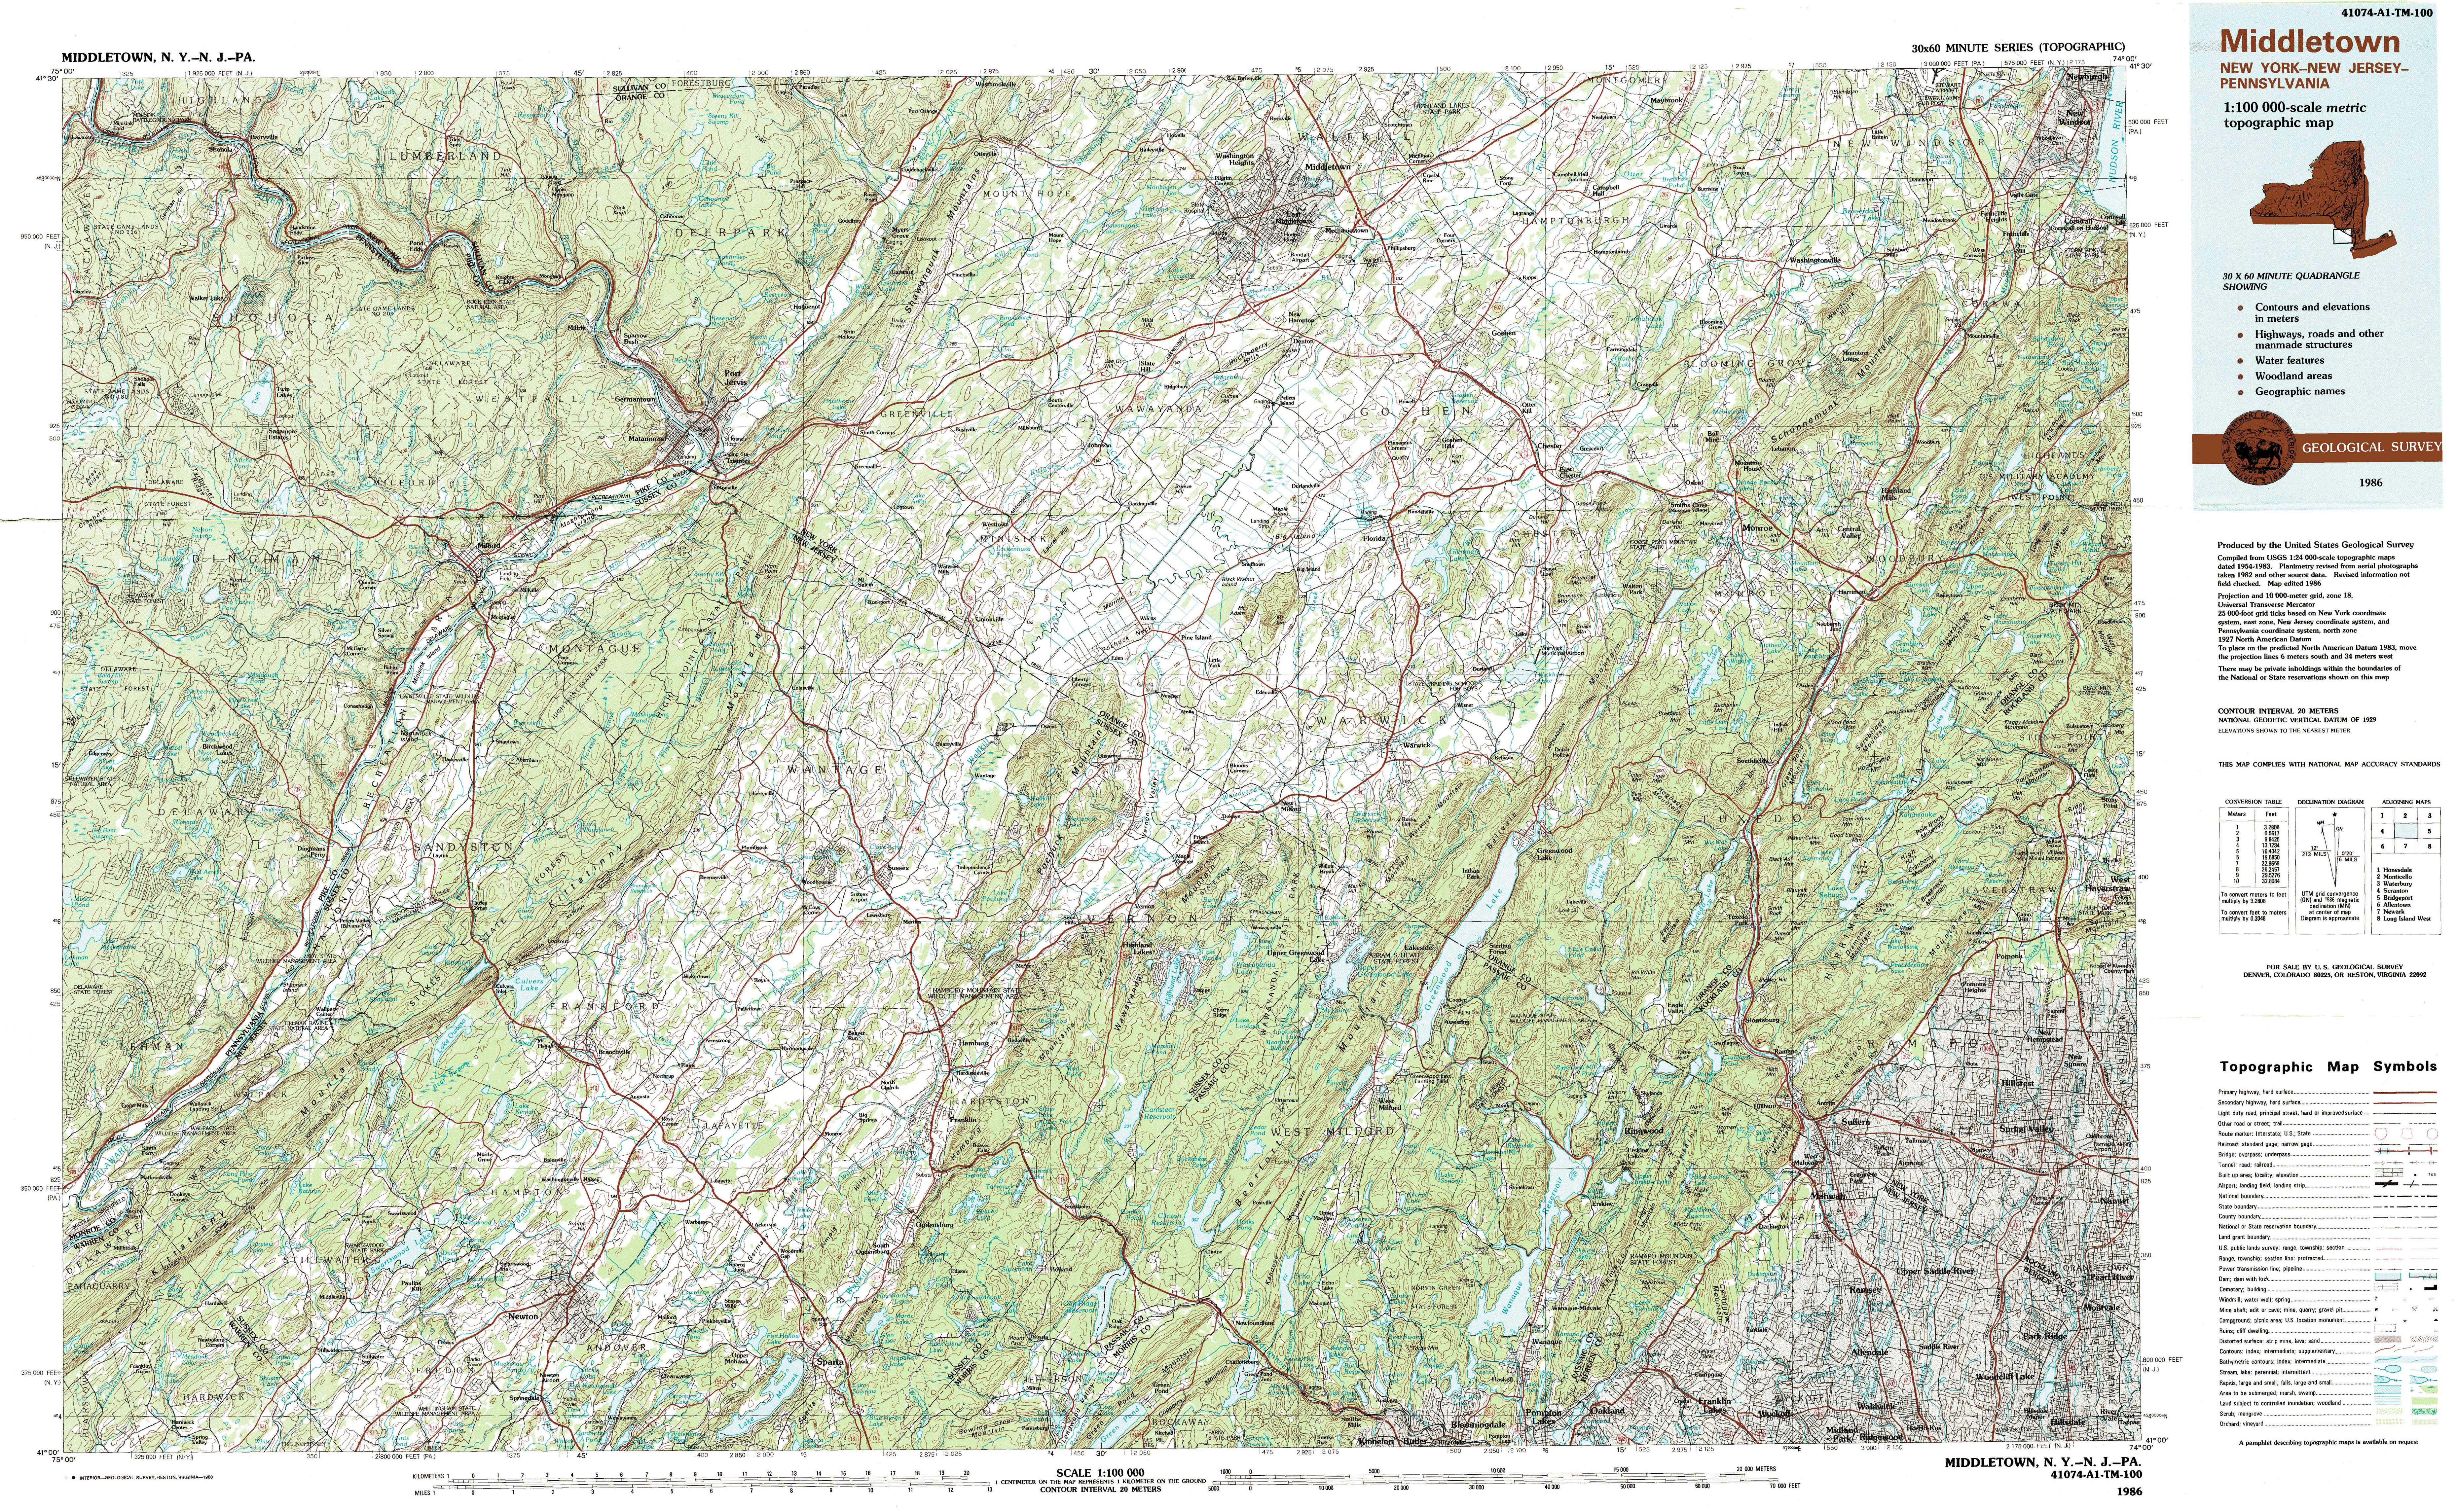 New York Topo Maps Topographic Maps - Topographical map of pa